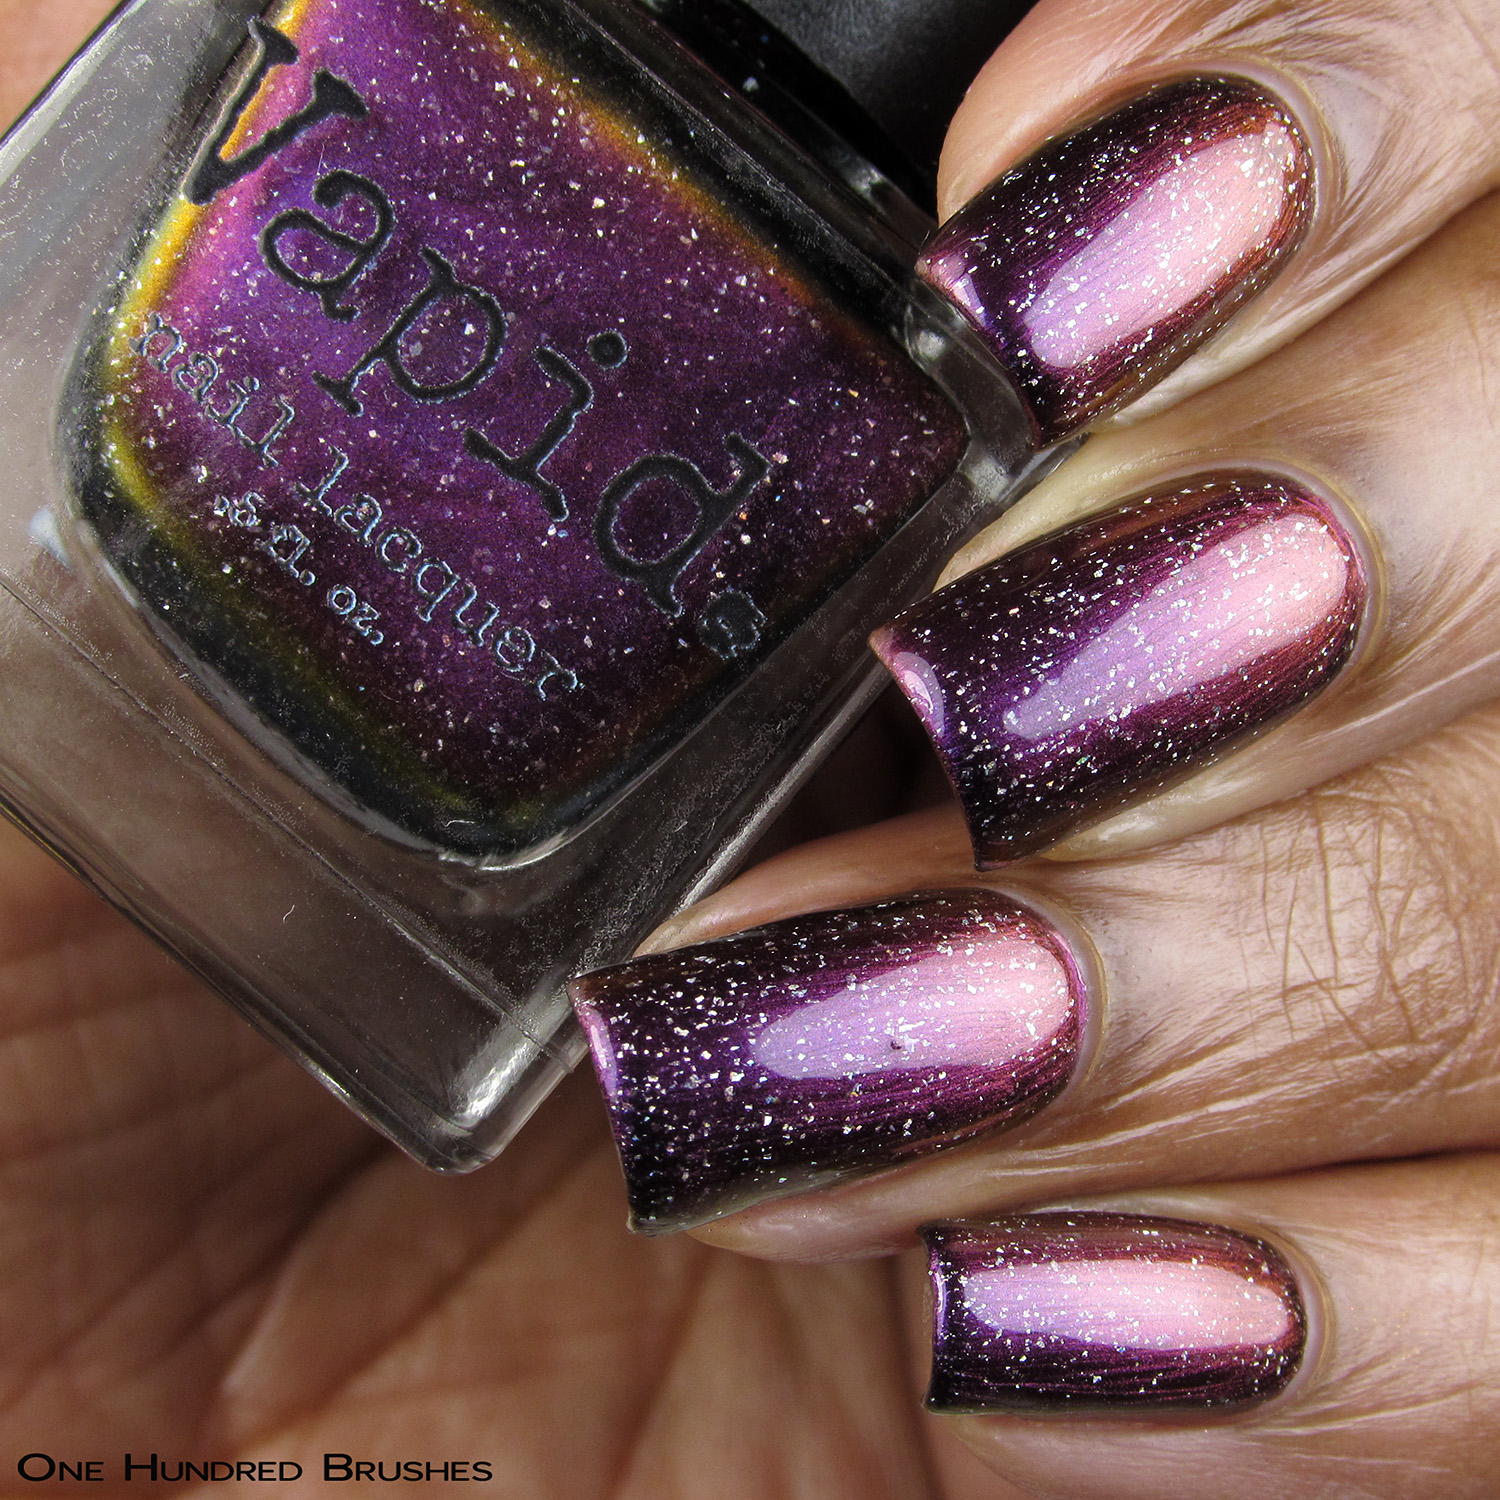 Pandora's Cluster Dirty - Cosmos Collection 2019 - Vapid Lacquer